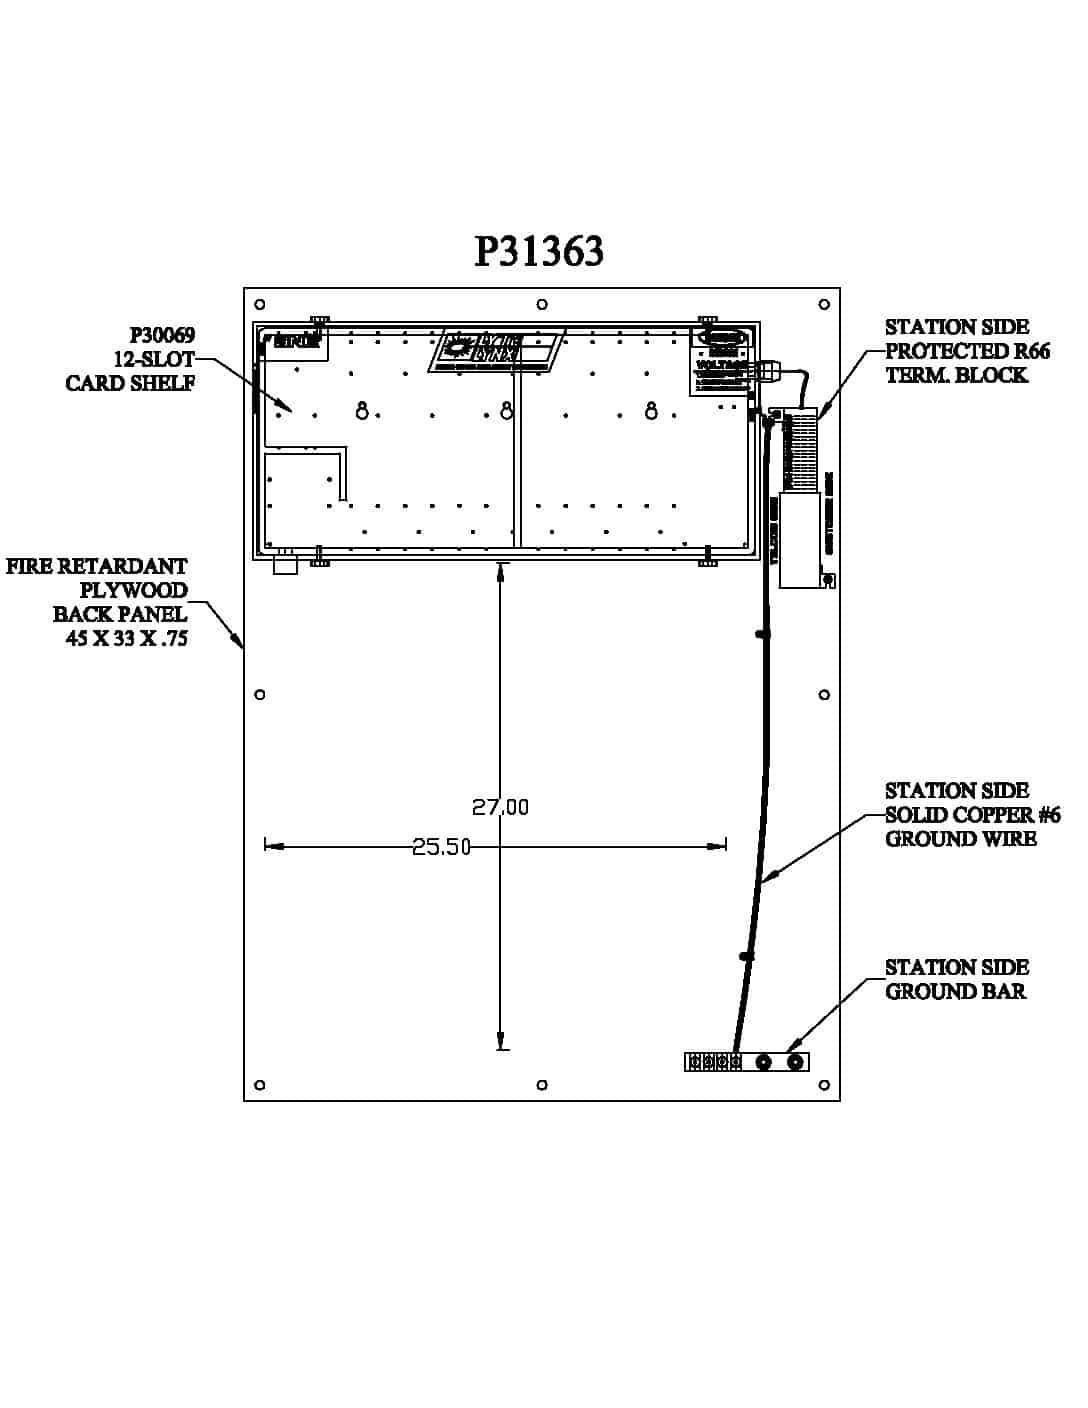 P31363 Turnkey Protection Packages – 12 slot PDF thumbnail